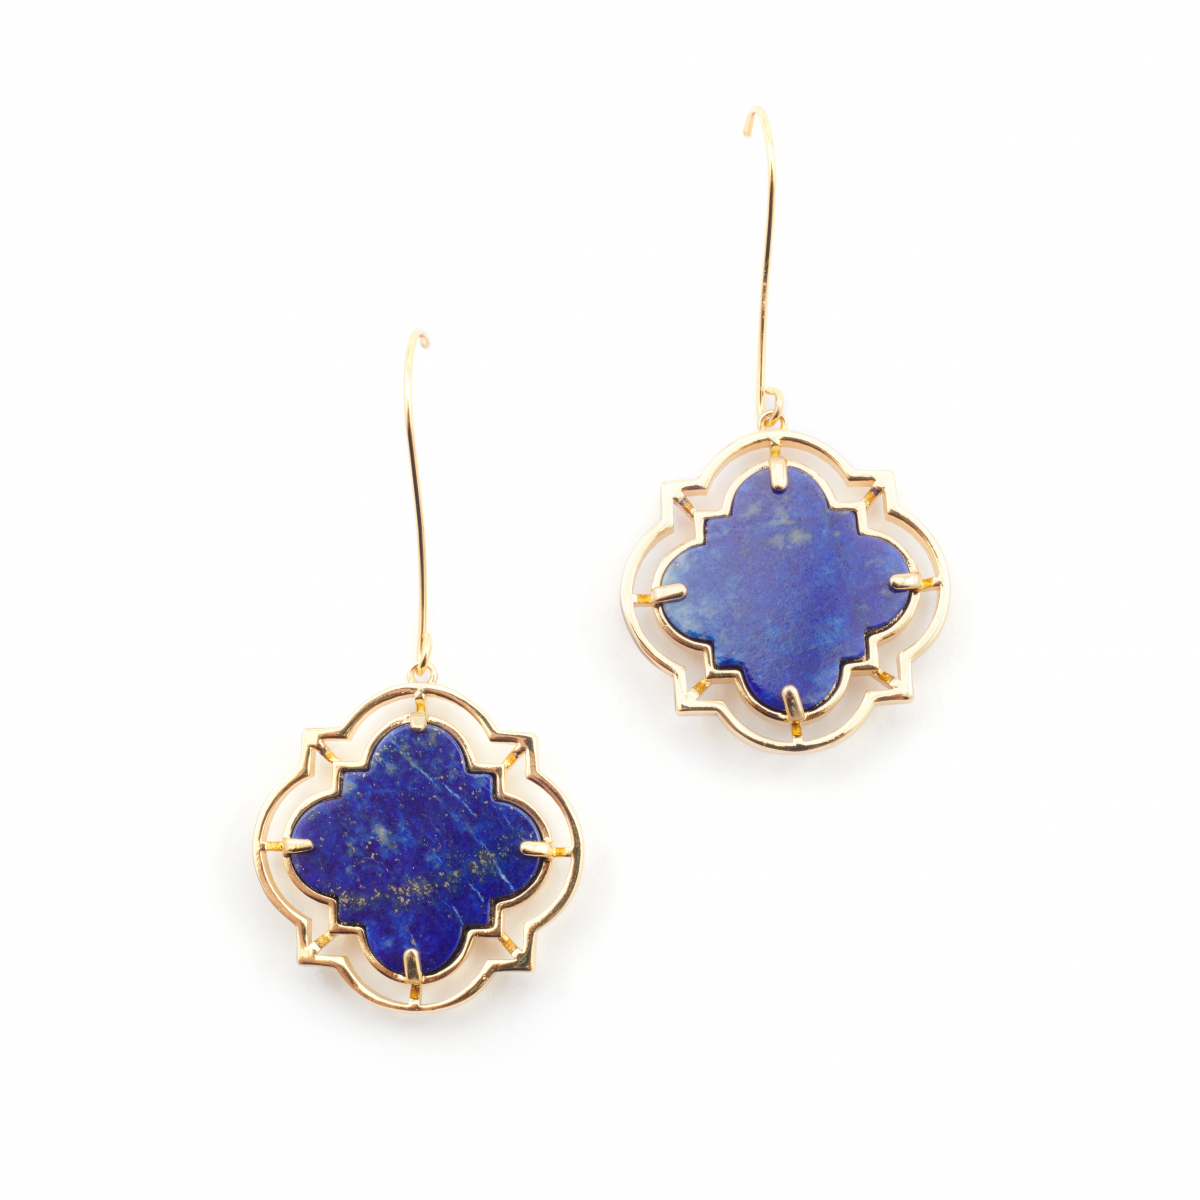 Statement Filigree Earrings - Lapis